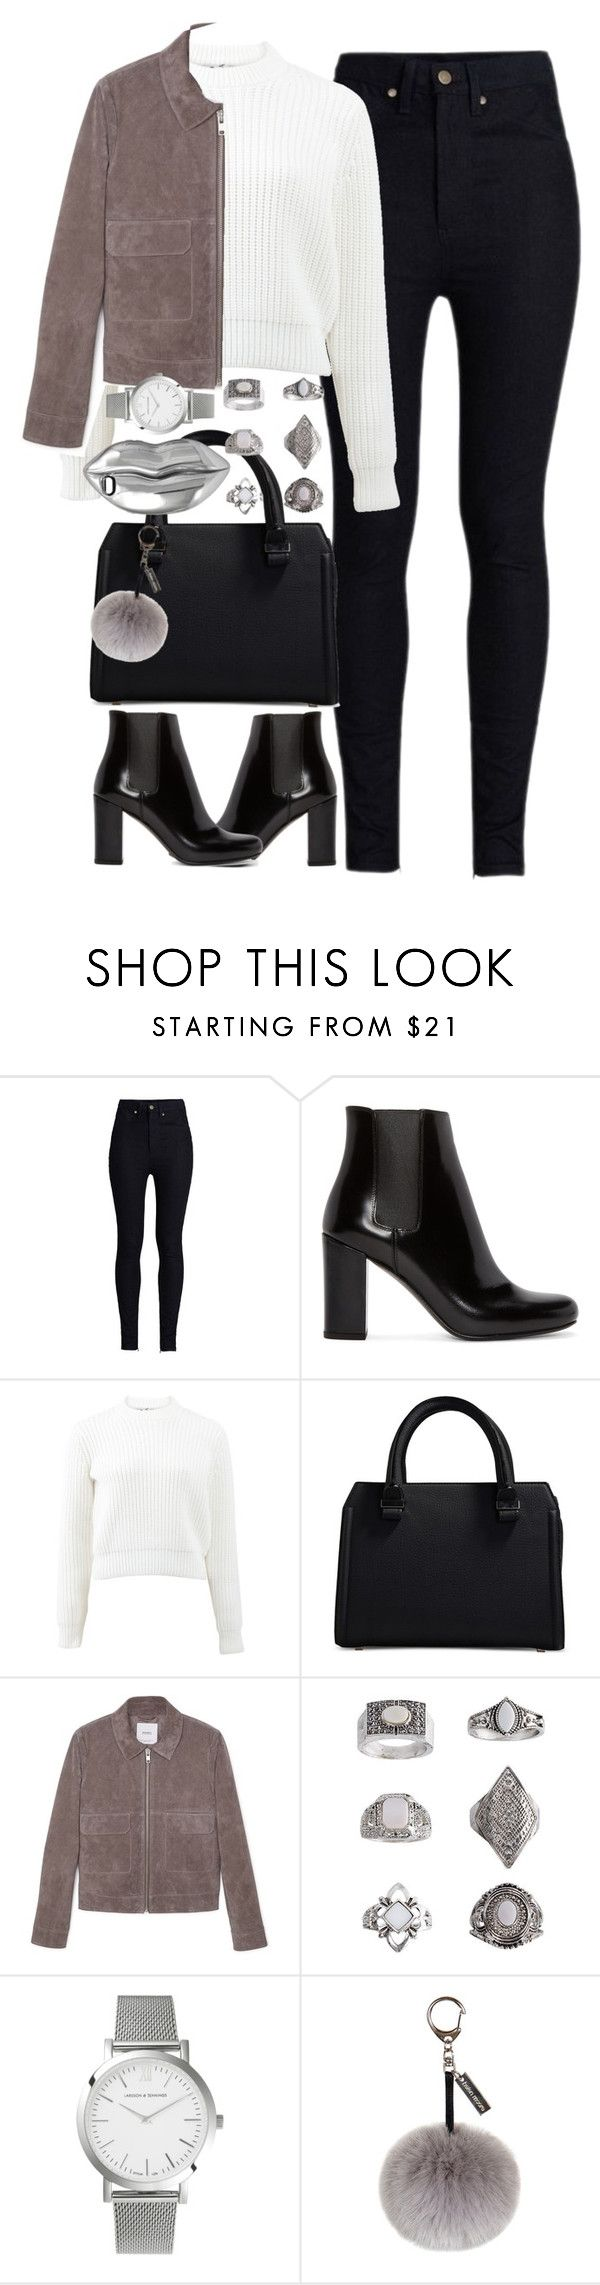 """""""Untitled #4042"""" by london-wanderlust ❤ liked on Polyvore featuring Rodarte, Yves Saint Laurent, T By Alexander Wang, Victoria Beckham, MANGO, Topshop, Larsson & Jennings, Helen Moore and STELLA McCARTNEY"""